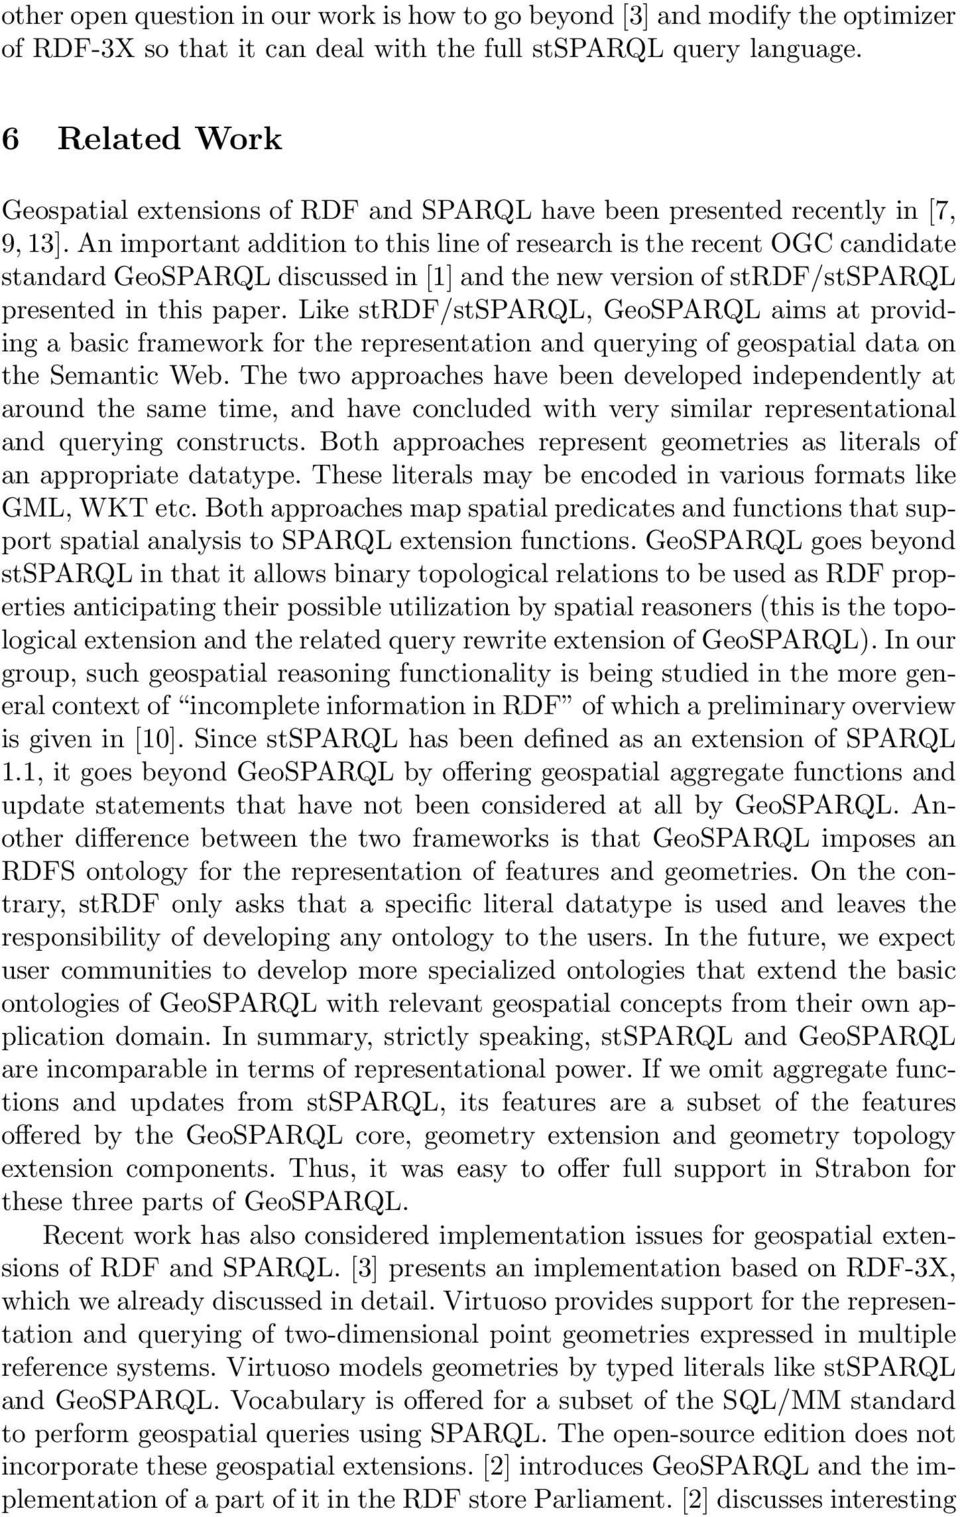 An important addition to this line of research is the recent OGC candidate standard GeoSPARQL discussed in [1] and the new version of strdf/stsparql presented in this paper.